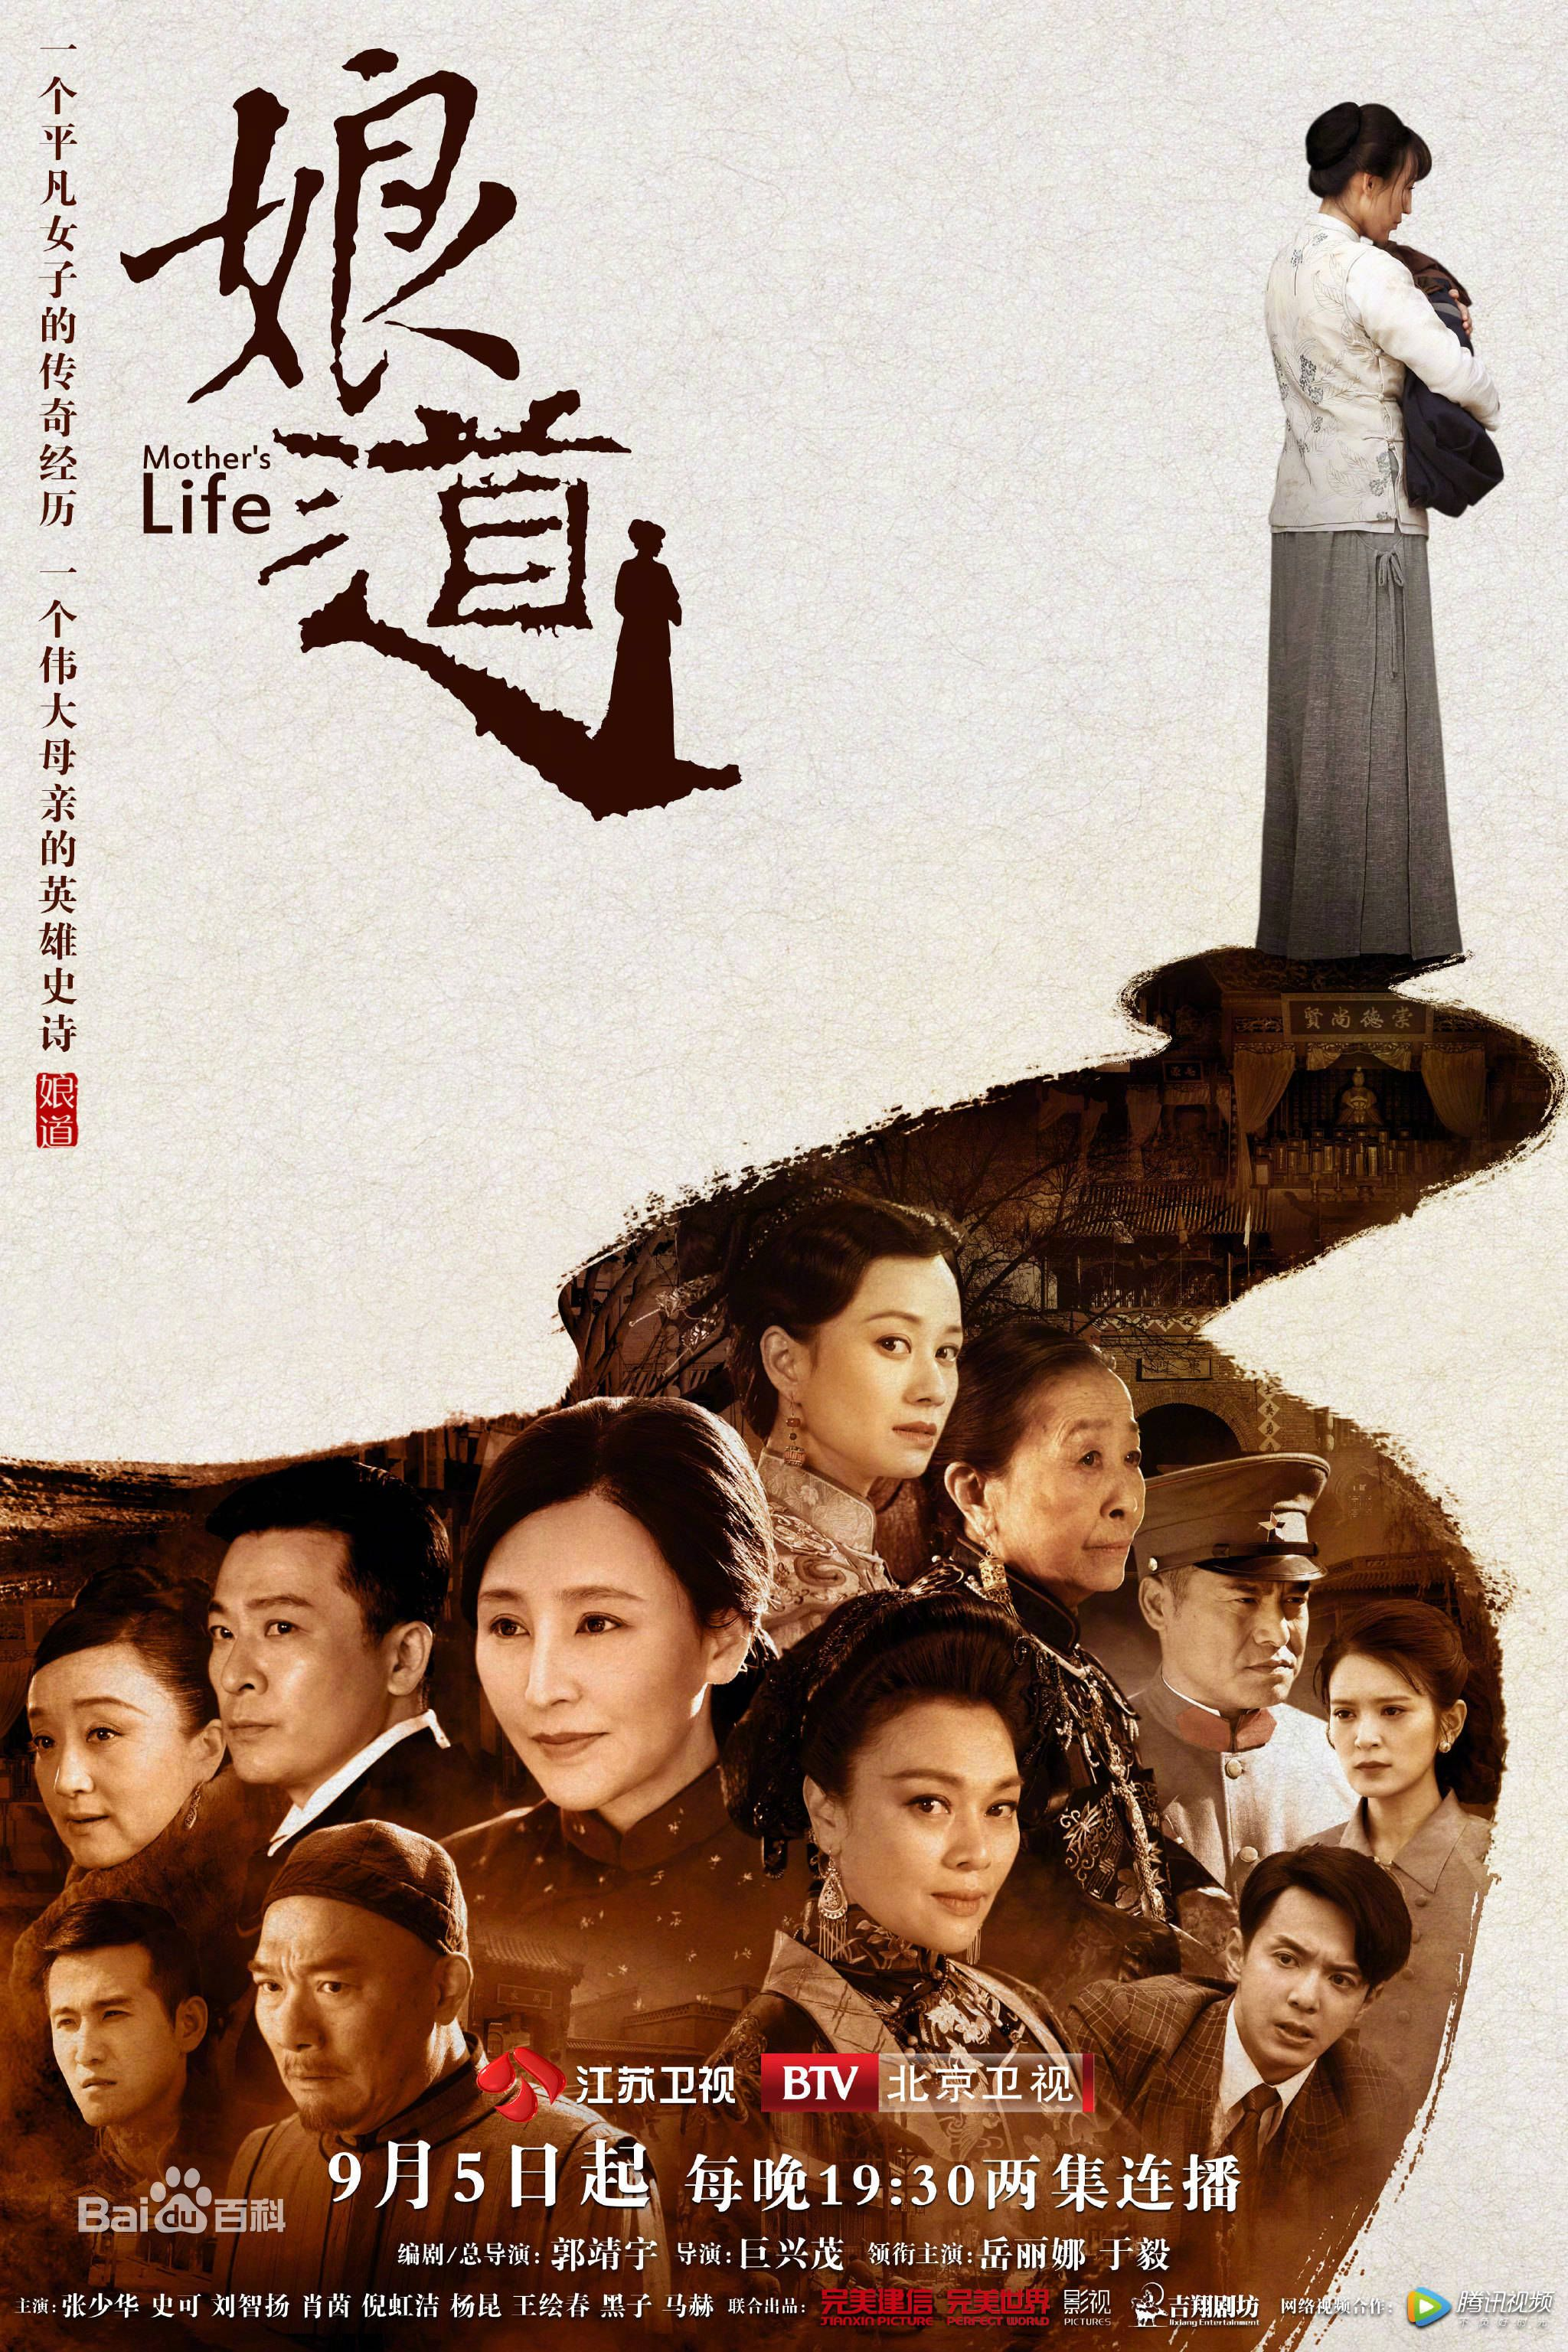 The Mother Said Ep 1 | 电影海报 | Chinese posters, Newspaper design